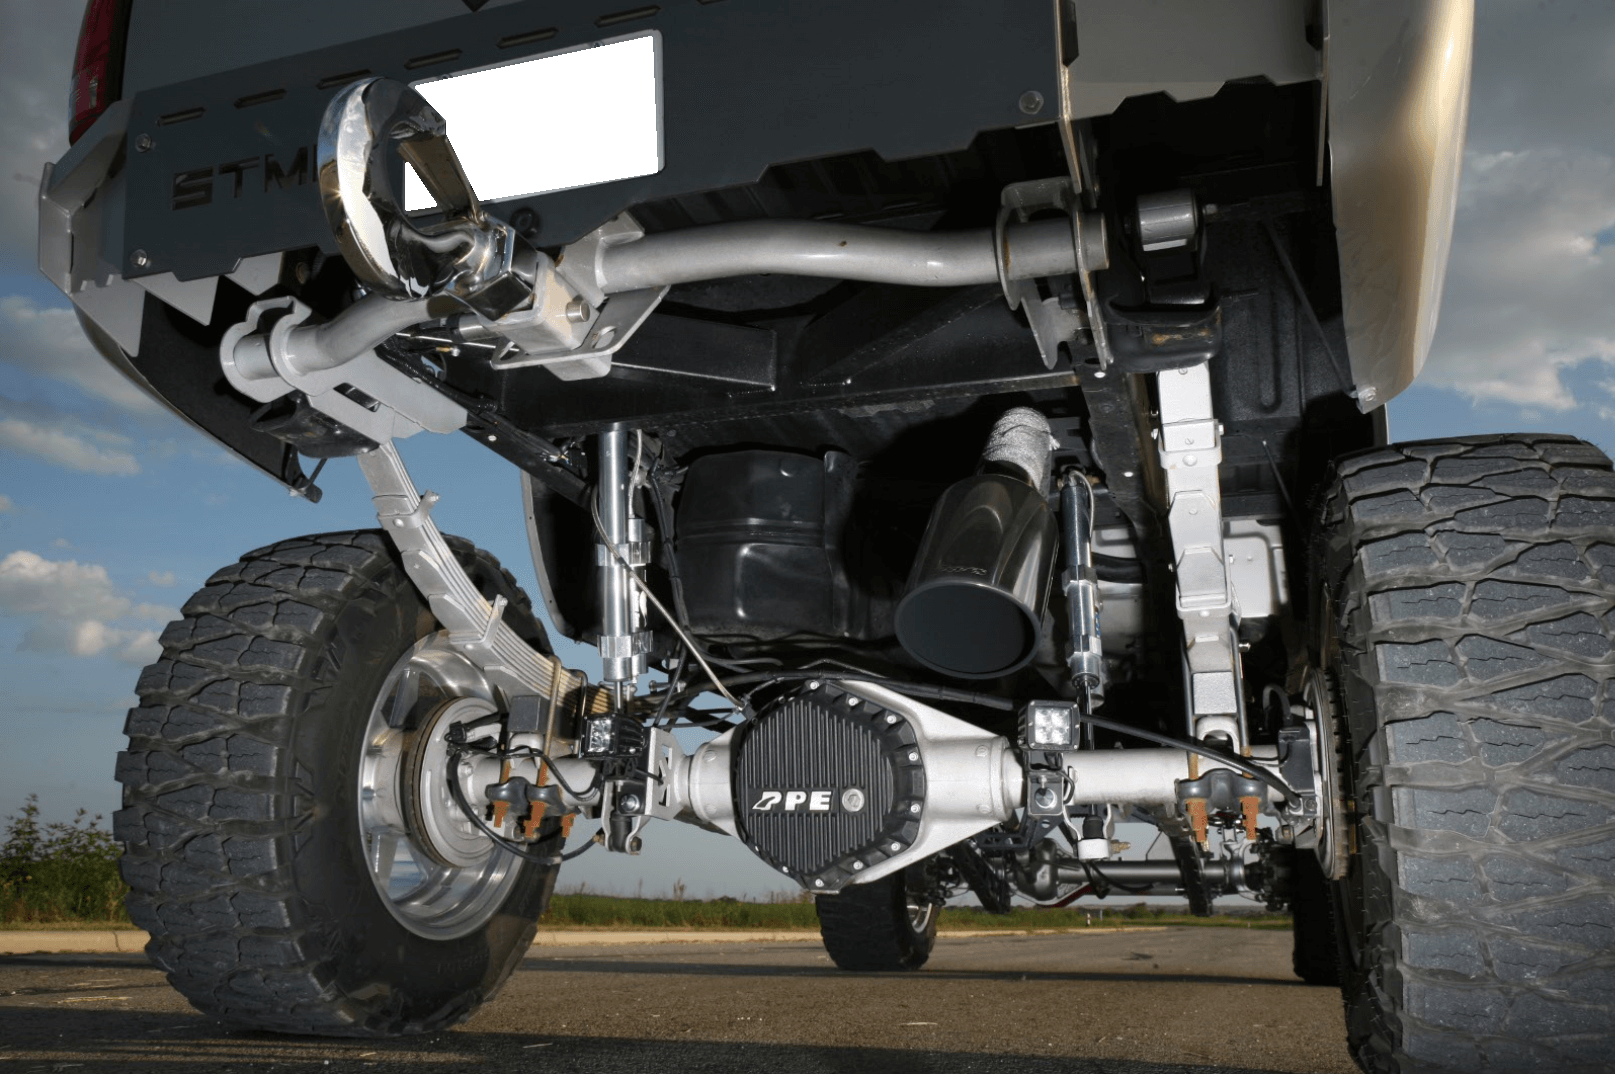 Arched 10-inch springs from Atlas combined with 2-inch blocks give the truck its 12-inch lift, and Fox shocks provide 14-inch of travel. A PPE rear differential cover dresses up the painted axle.